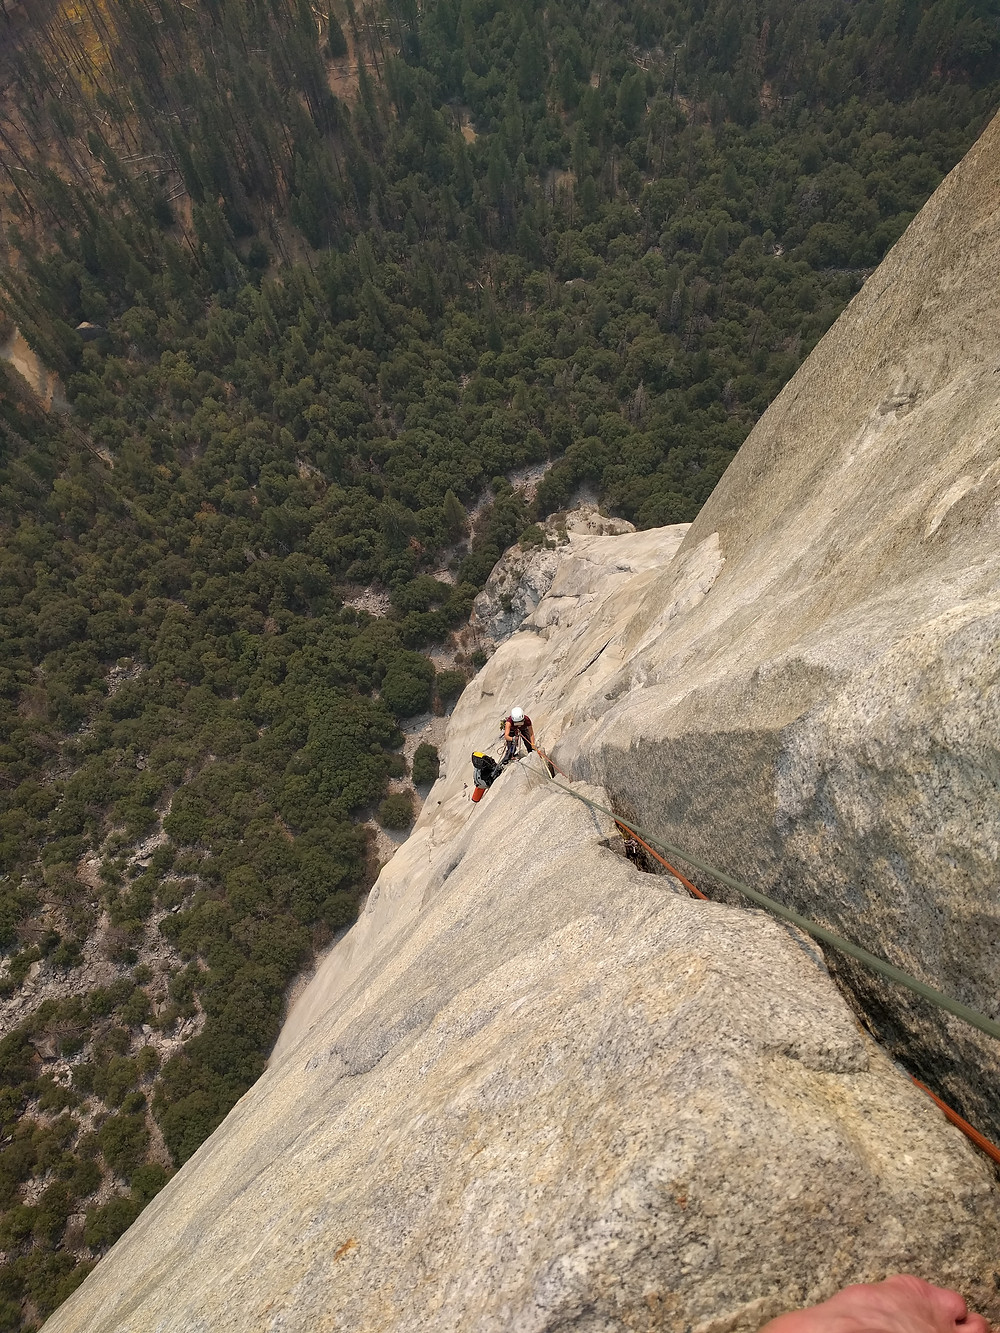 Hauling the Haulbags on The Nose, El Capitan, Yosemite.